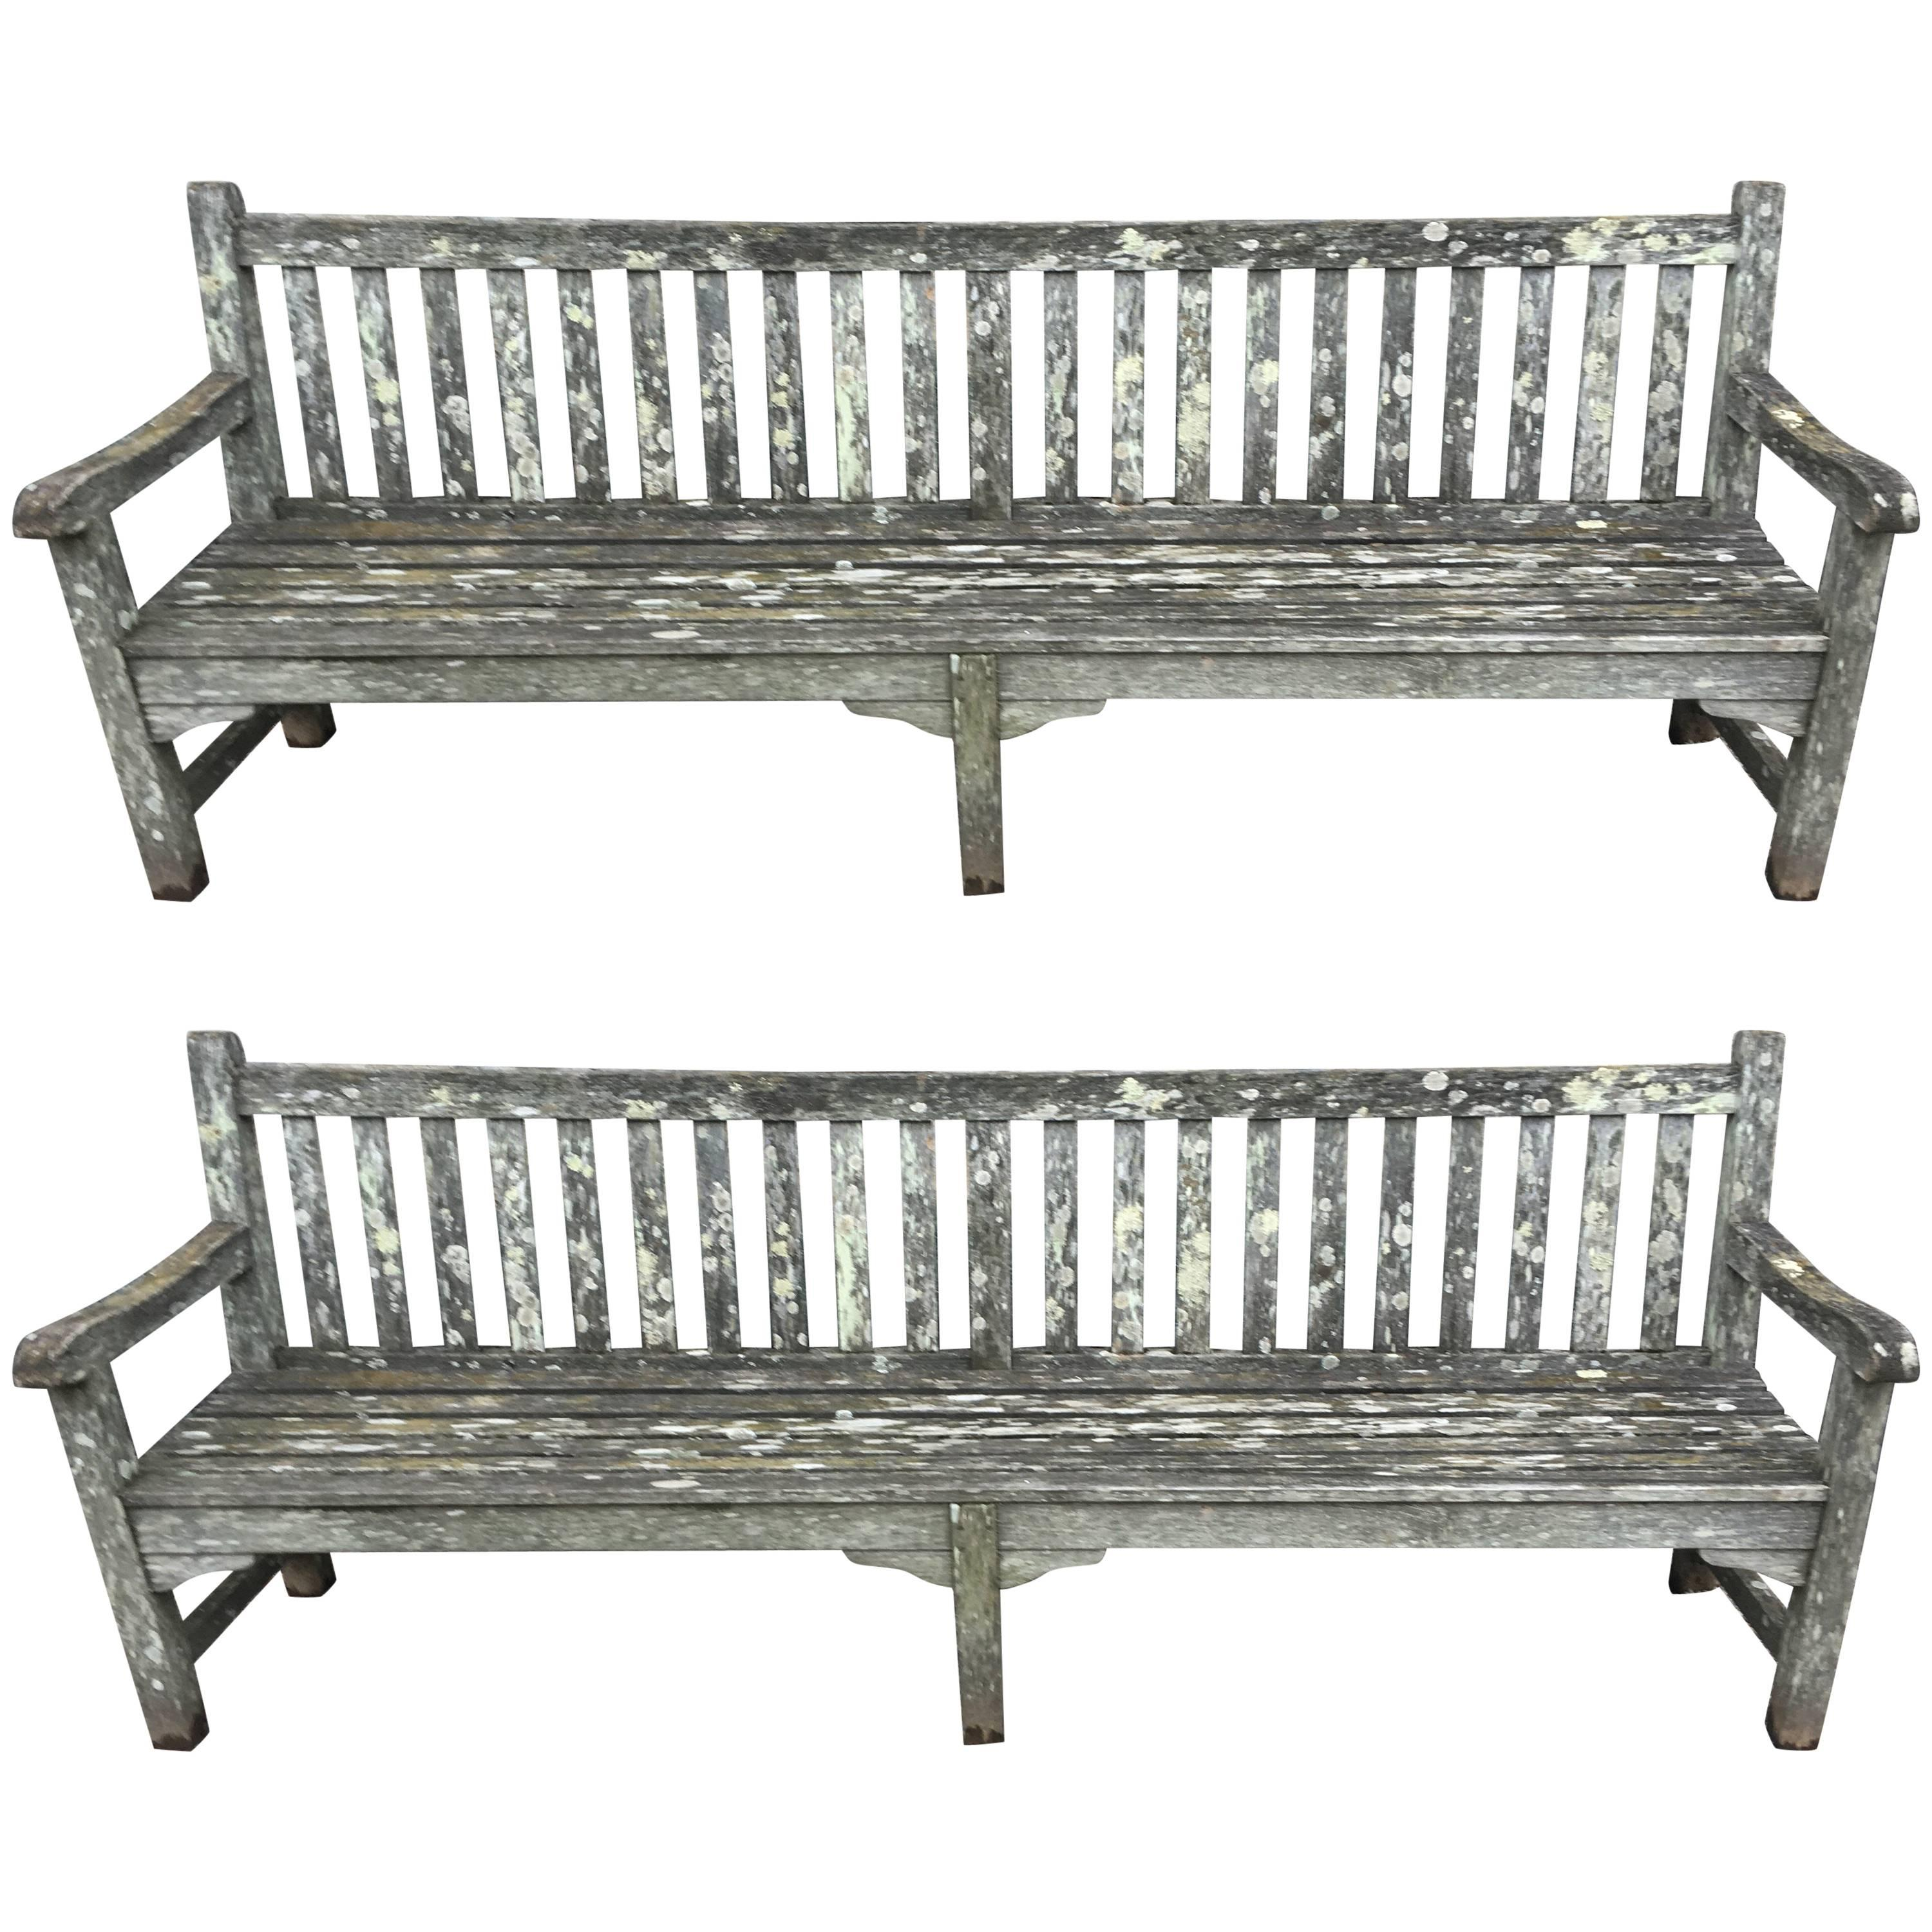 Pair Of Very Long Heavily Lichened English Teak Garden Benches For Sale